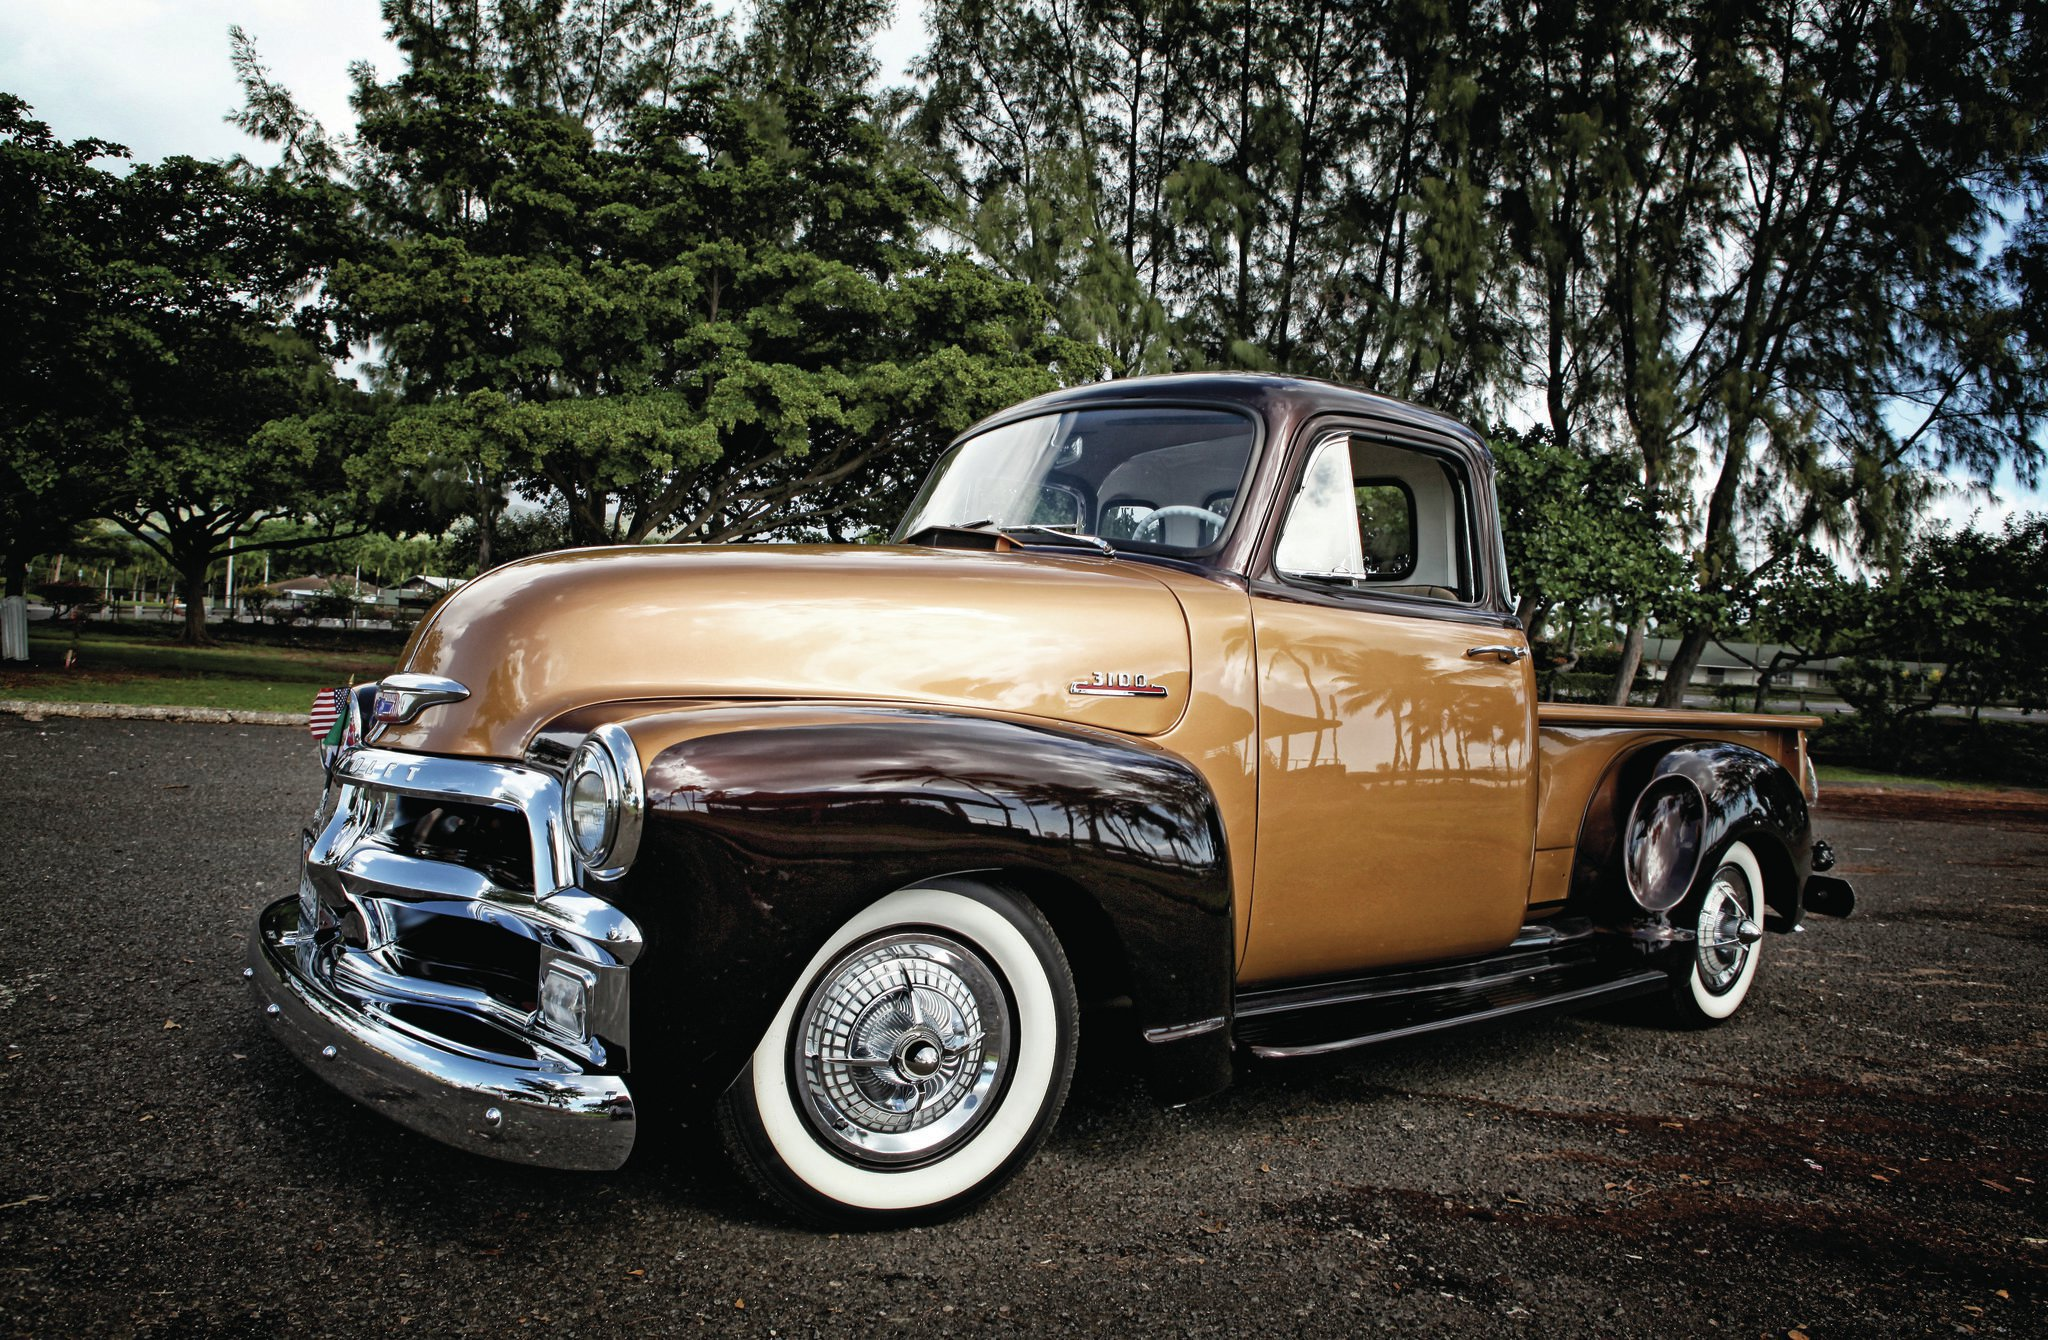 Body Paint Hawaii >> 1954 Chevrolet 3100 - Hawaiian Stepside